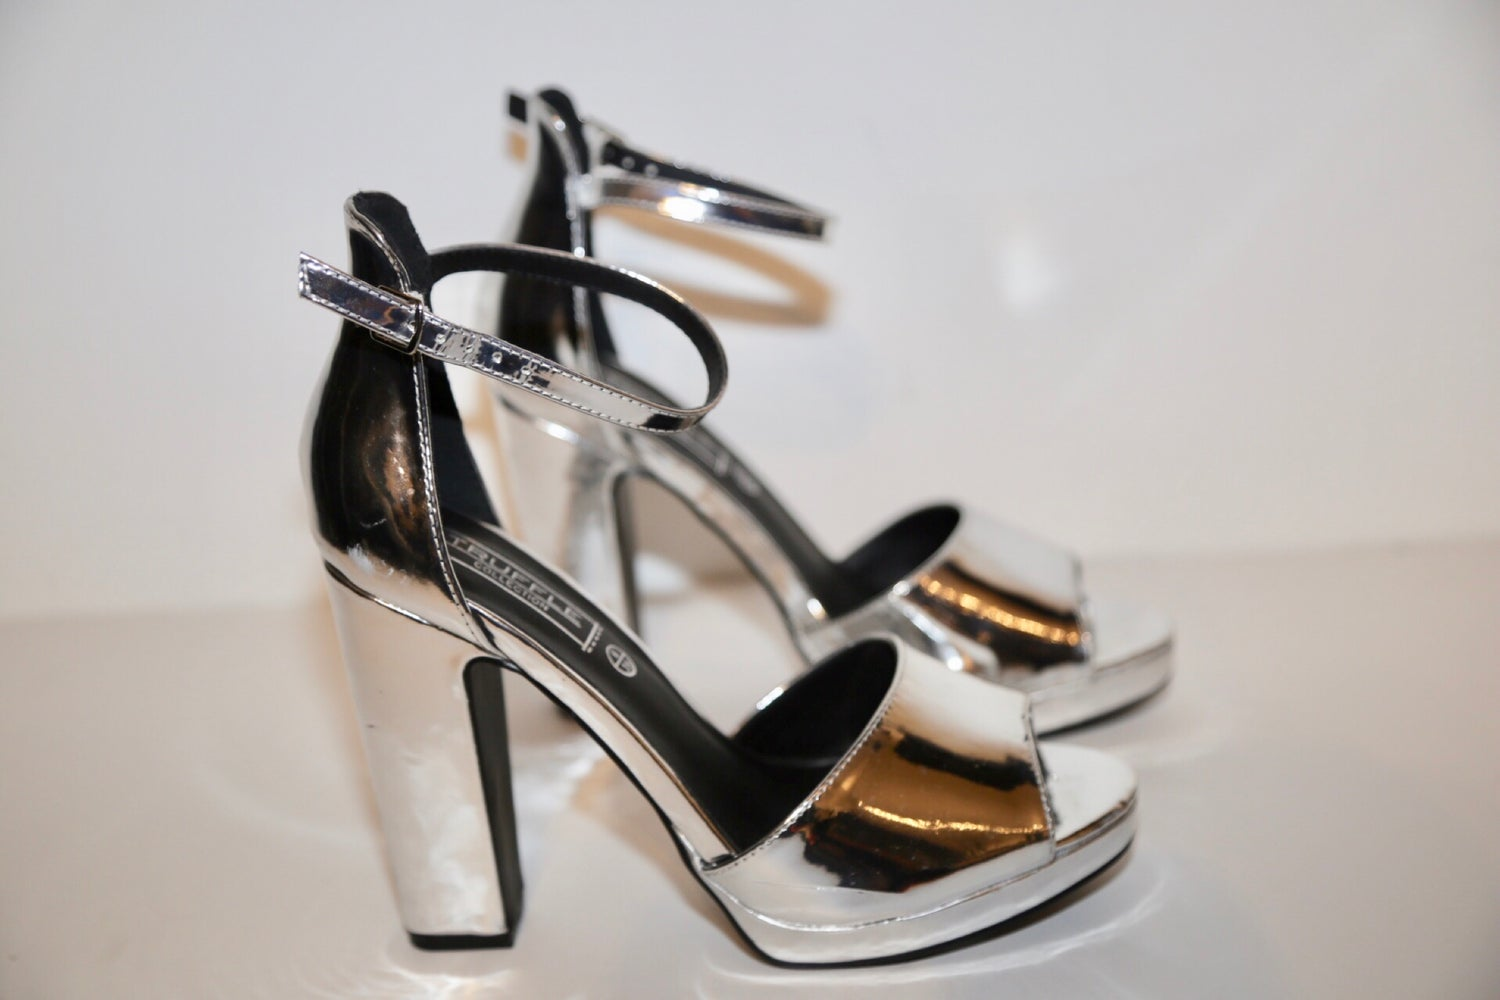 52289a63693 Image of TRUFFLE COLLECTION PLATFORM SHOES